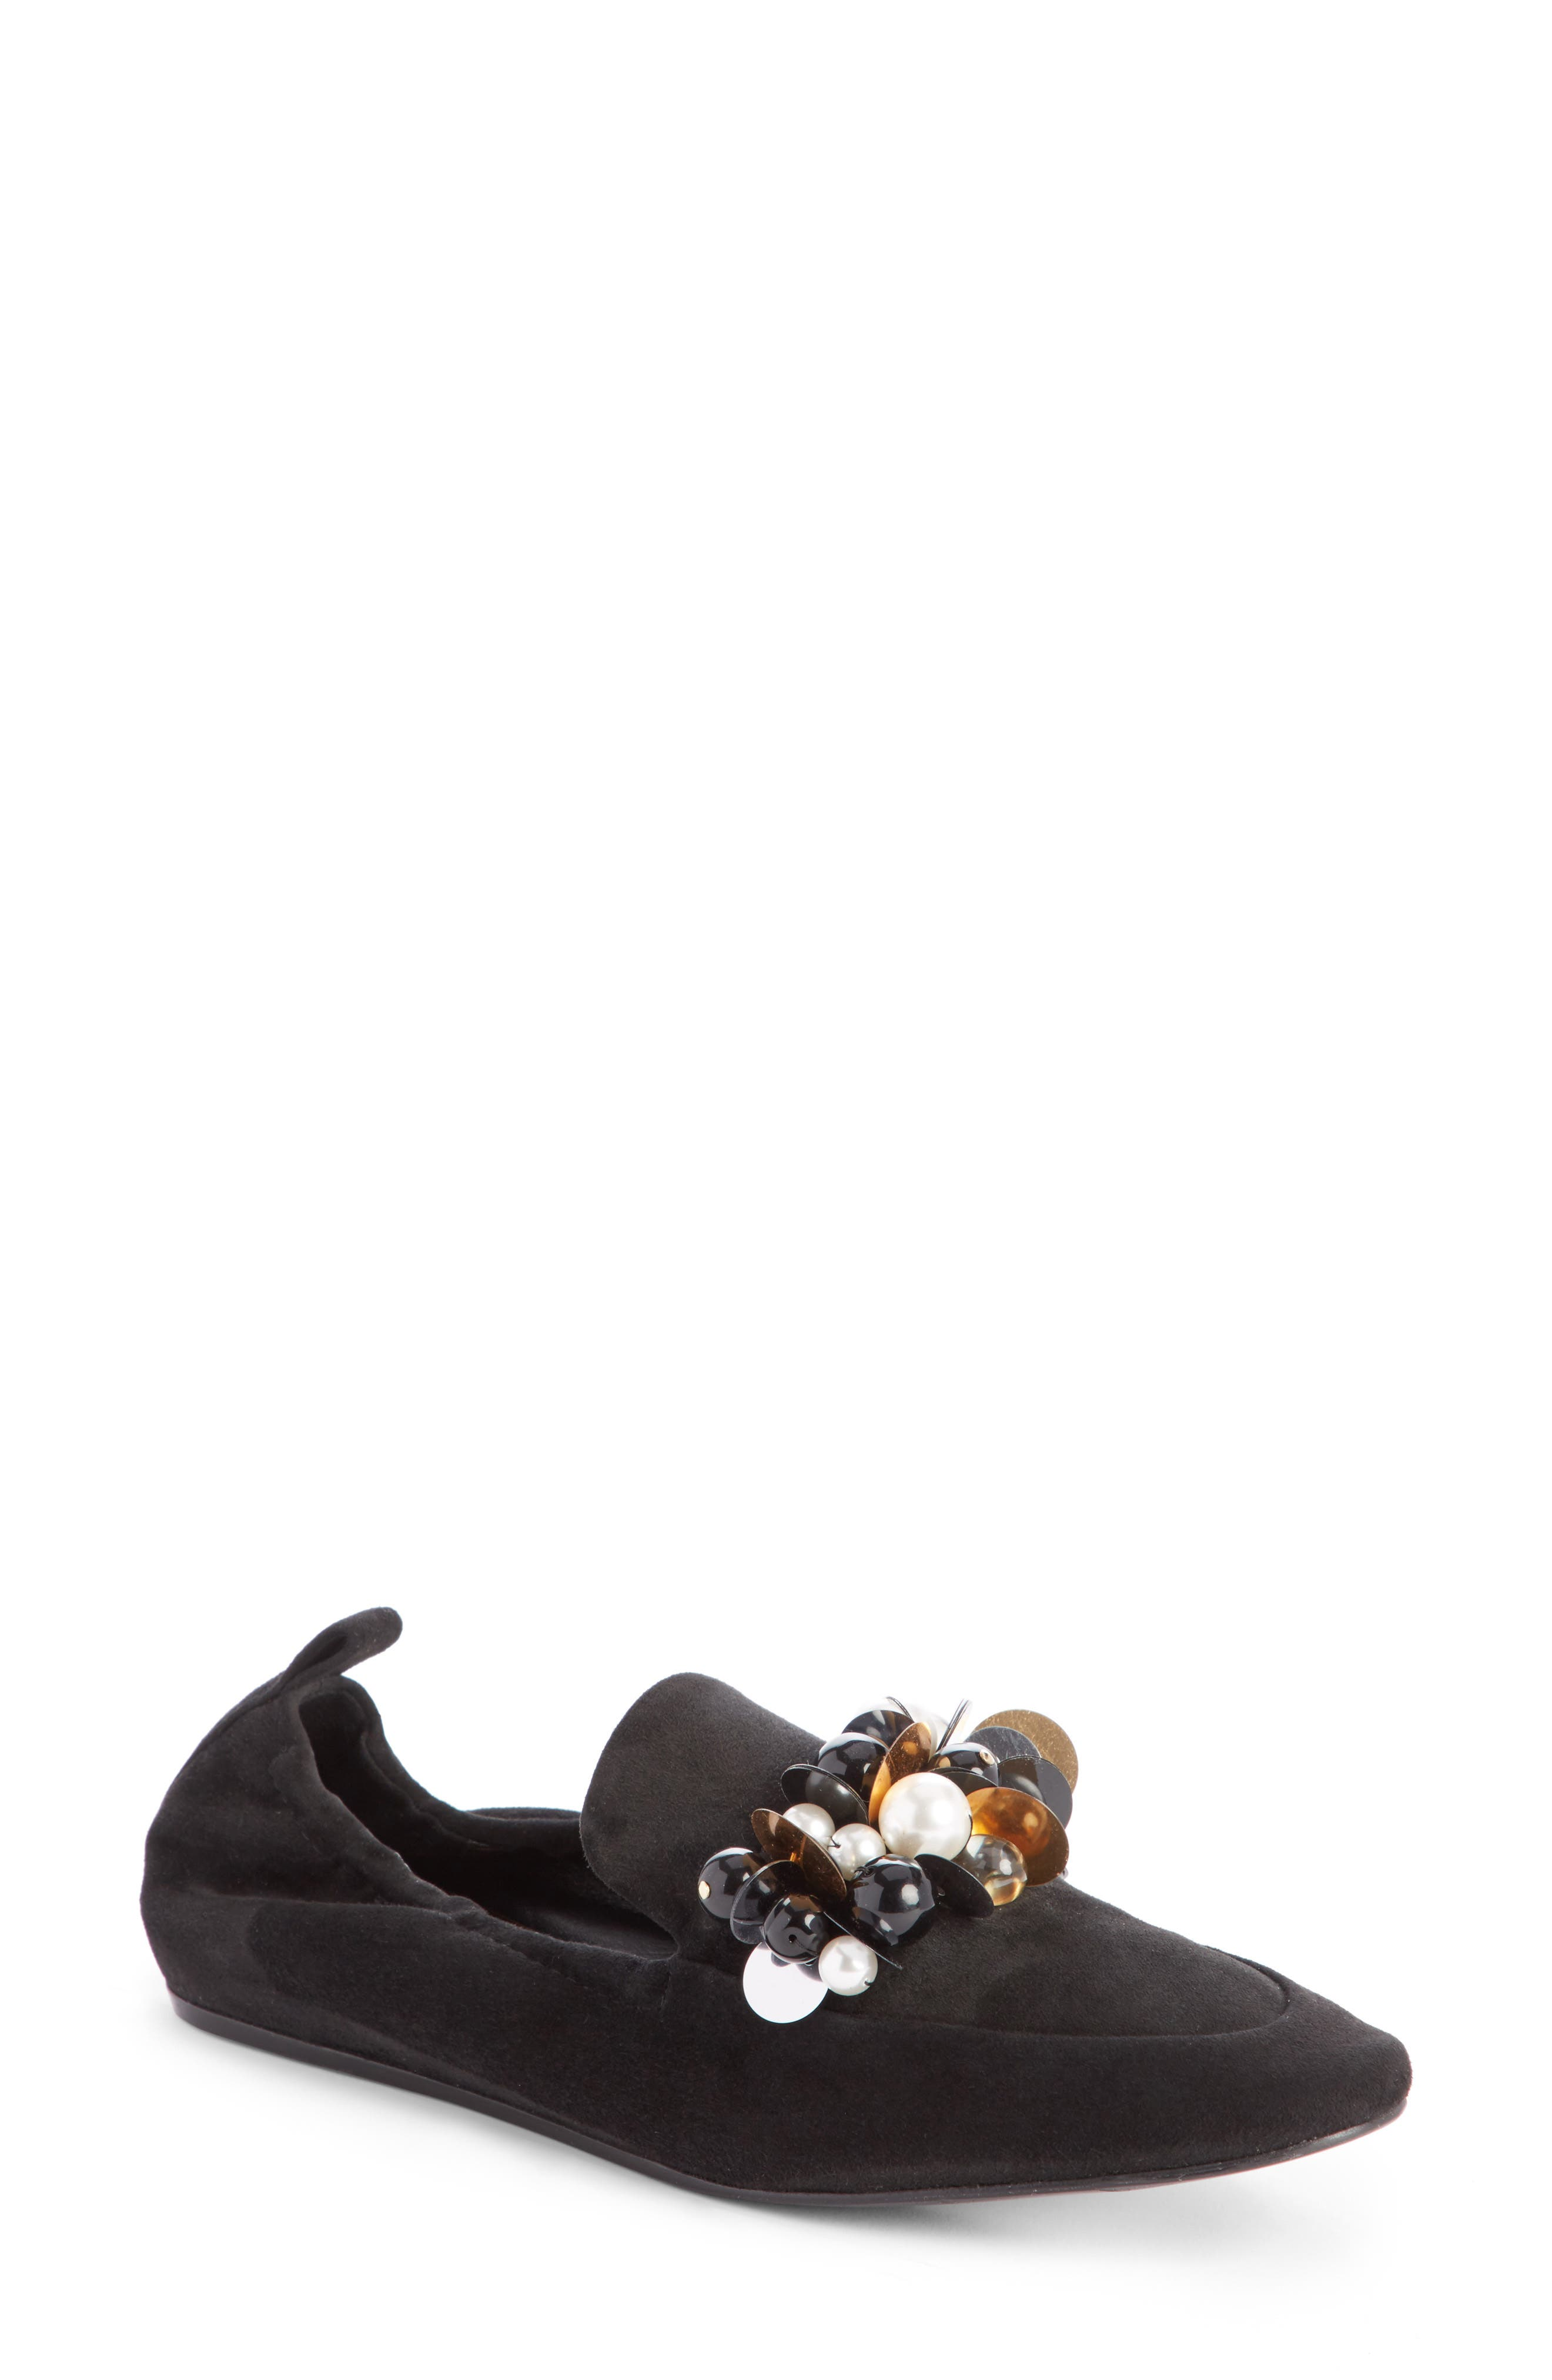 Pearl Slipper Loafer,                             Main thumbnail 1, color,                             001